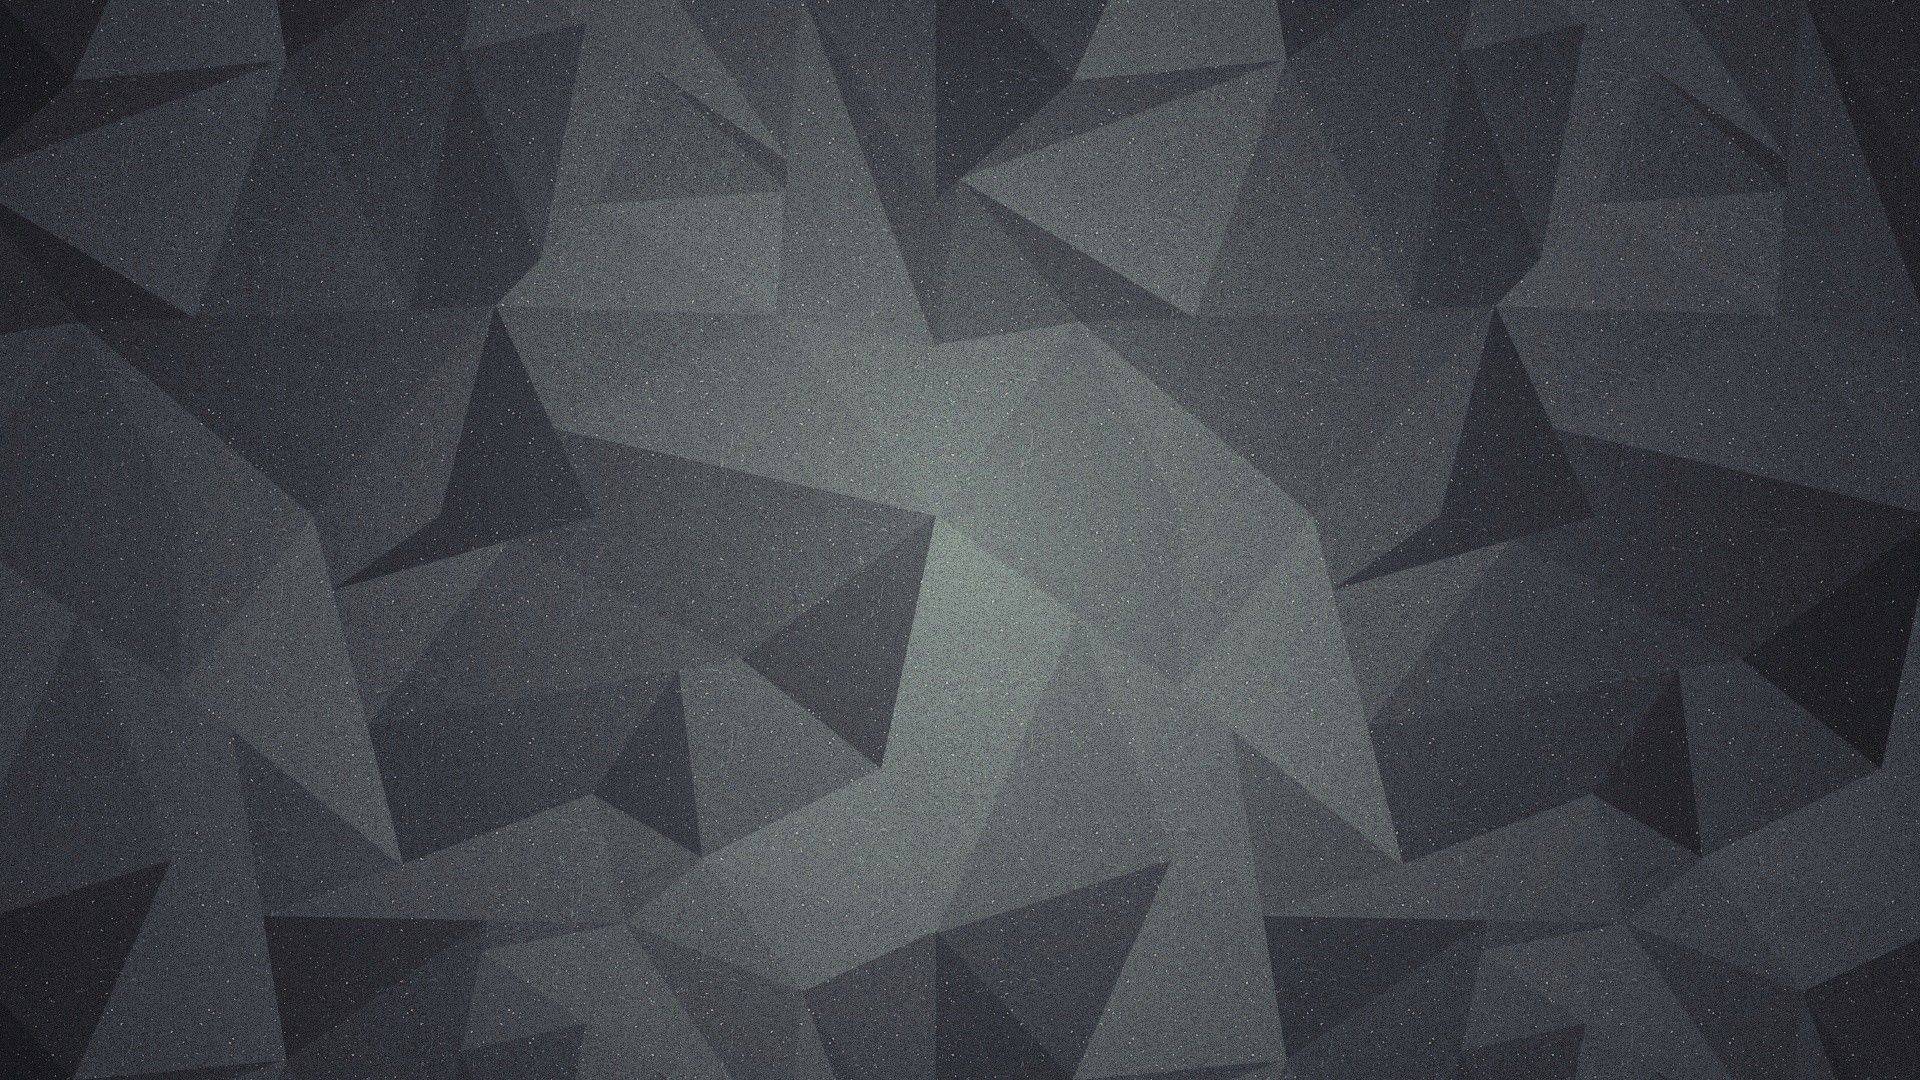 Subtle Sandpaper Texture Geometric Wallpaper